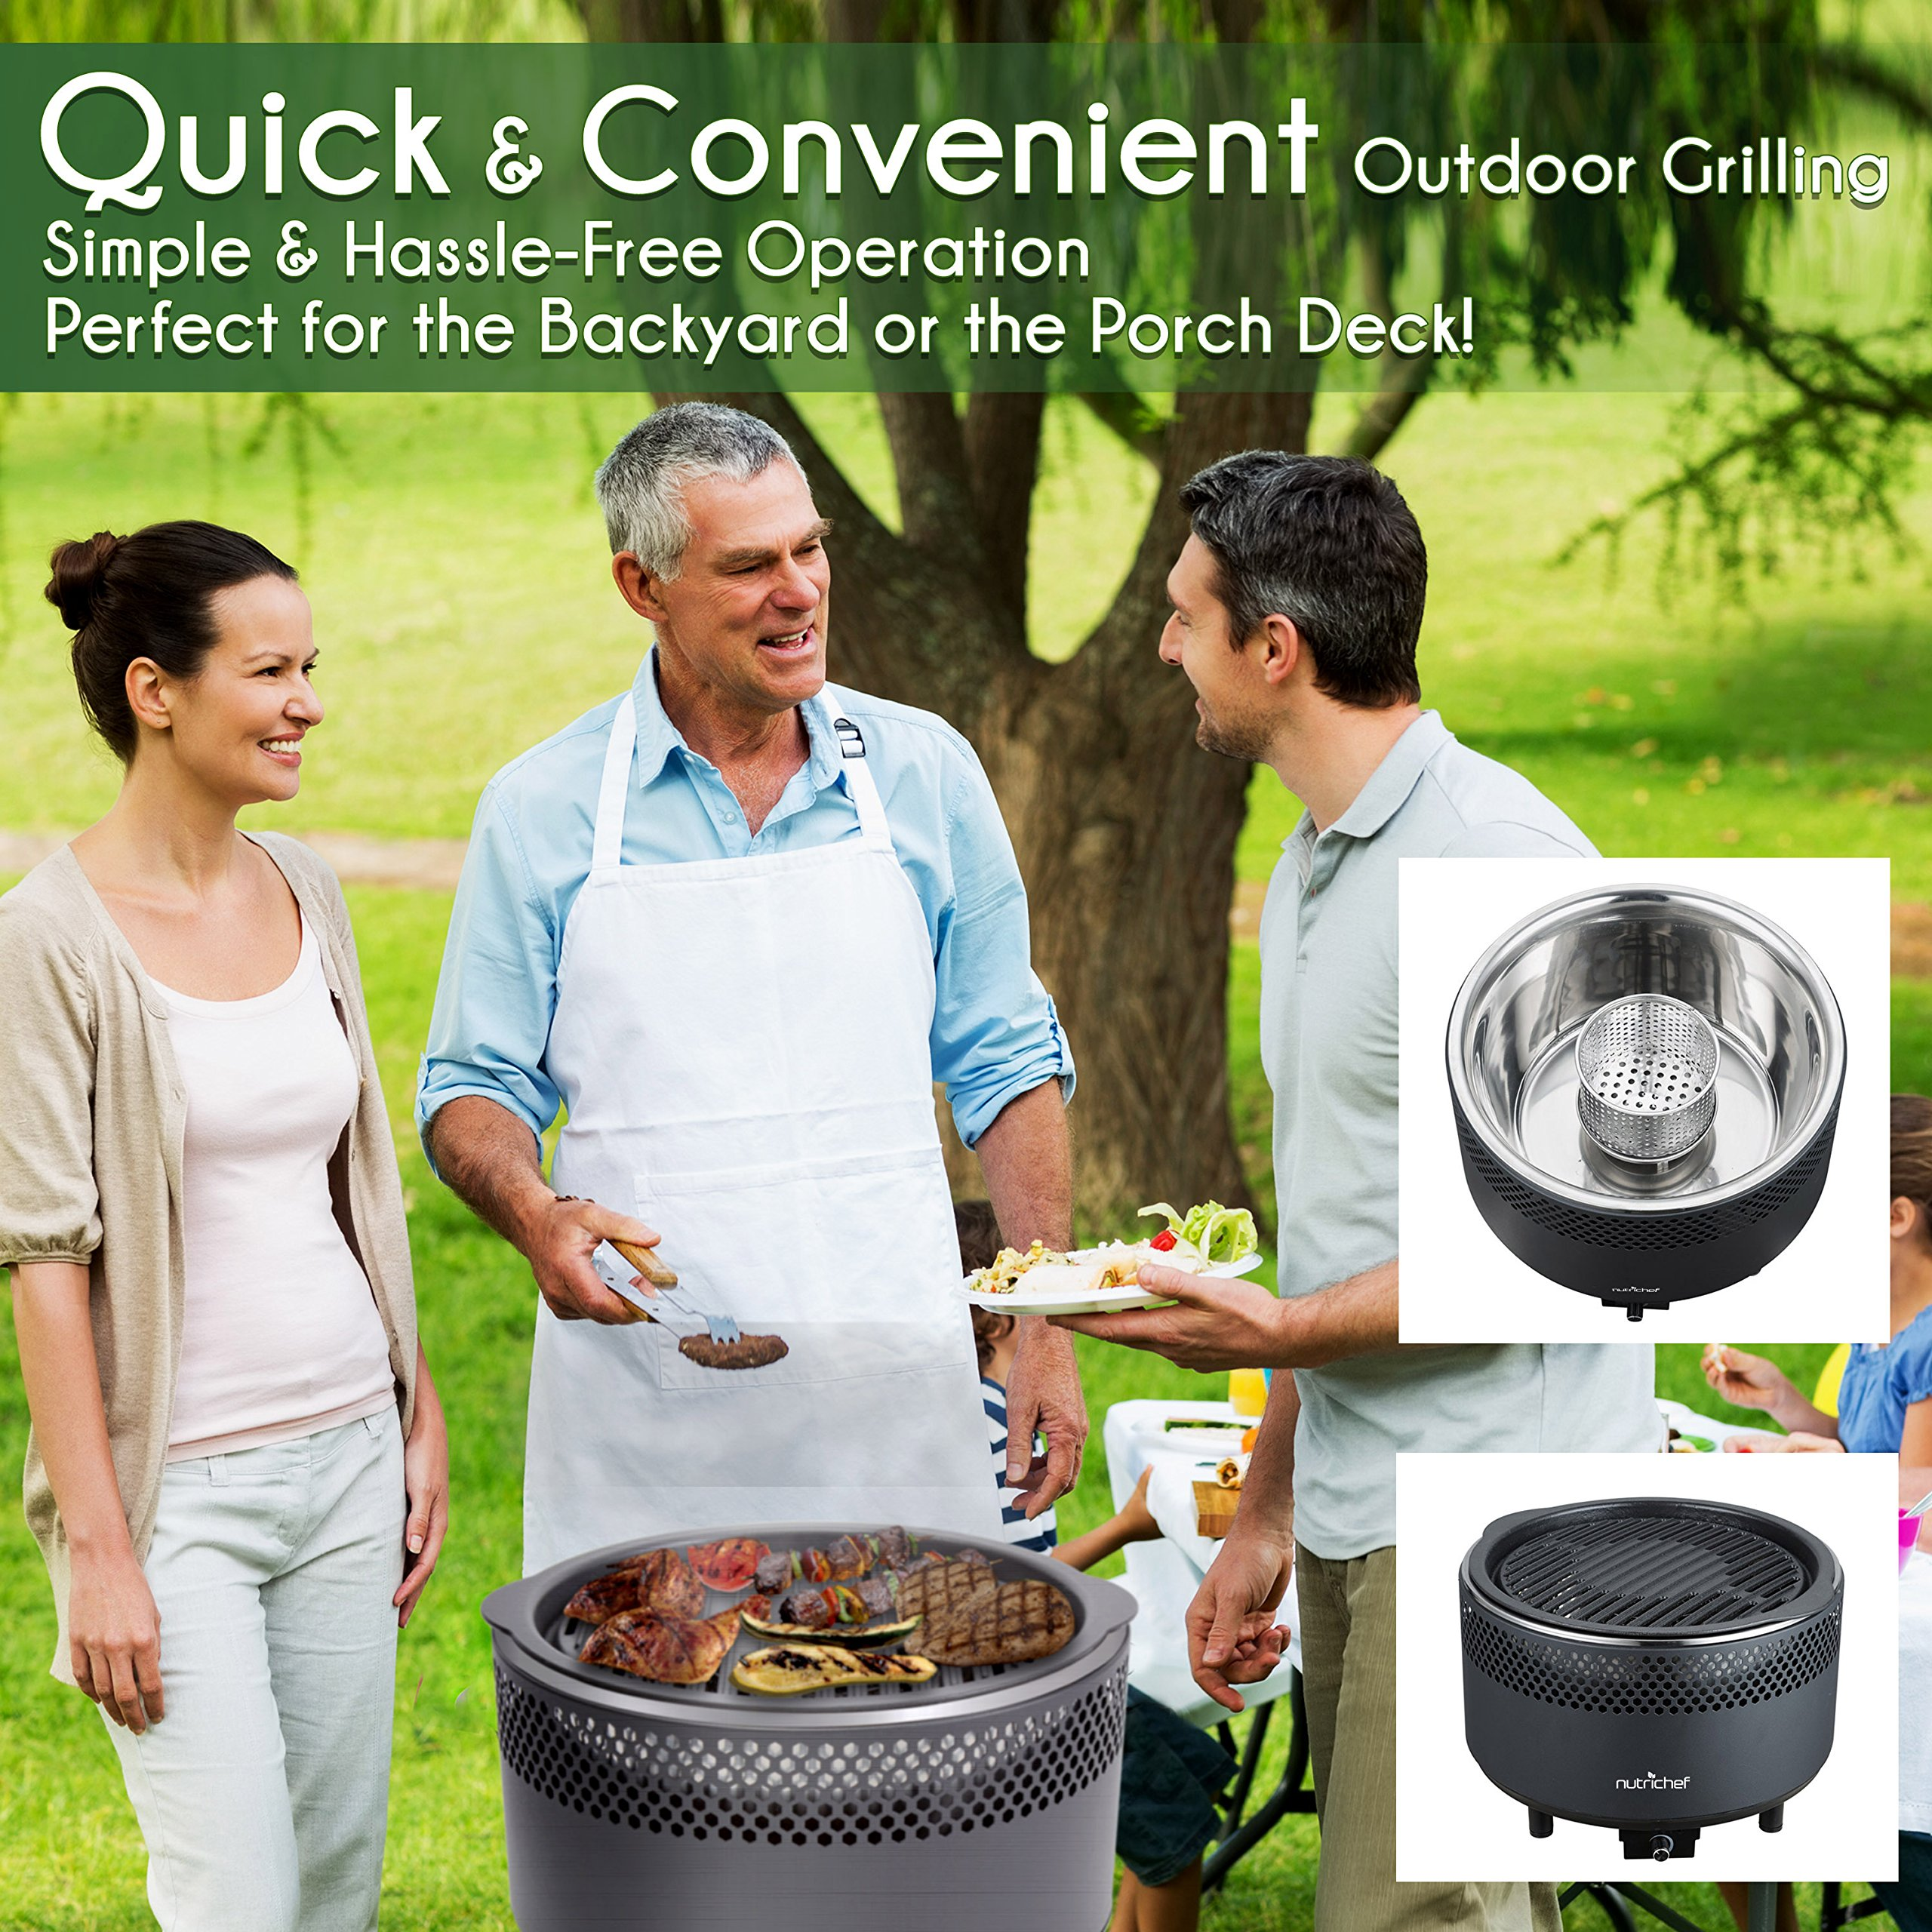 NutriChef Upgraded Charcoal BBQ Grill - Smokeless Portable Outdoor Stainless Steel Compact Easy Cleaning Heavy Duty - Battery Powered W/ Grilling Rack Coal Basket Ignition Tray & Box Set - PKGRCH41 by NutriChef (Image #5)